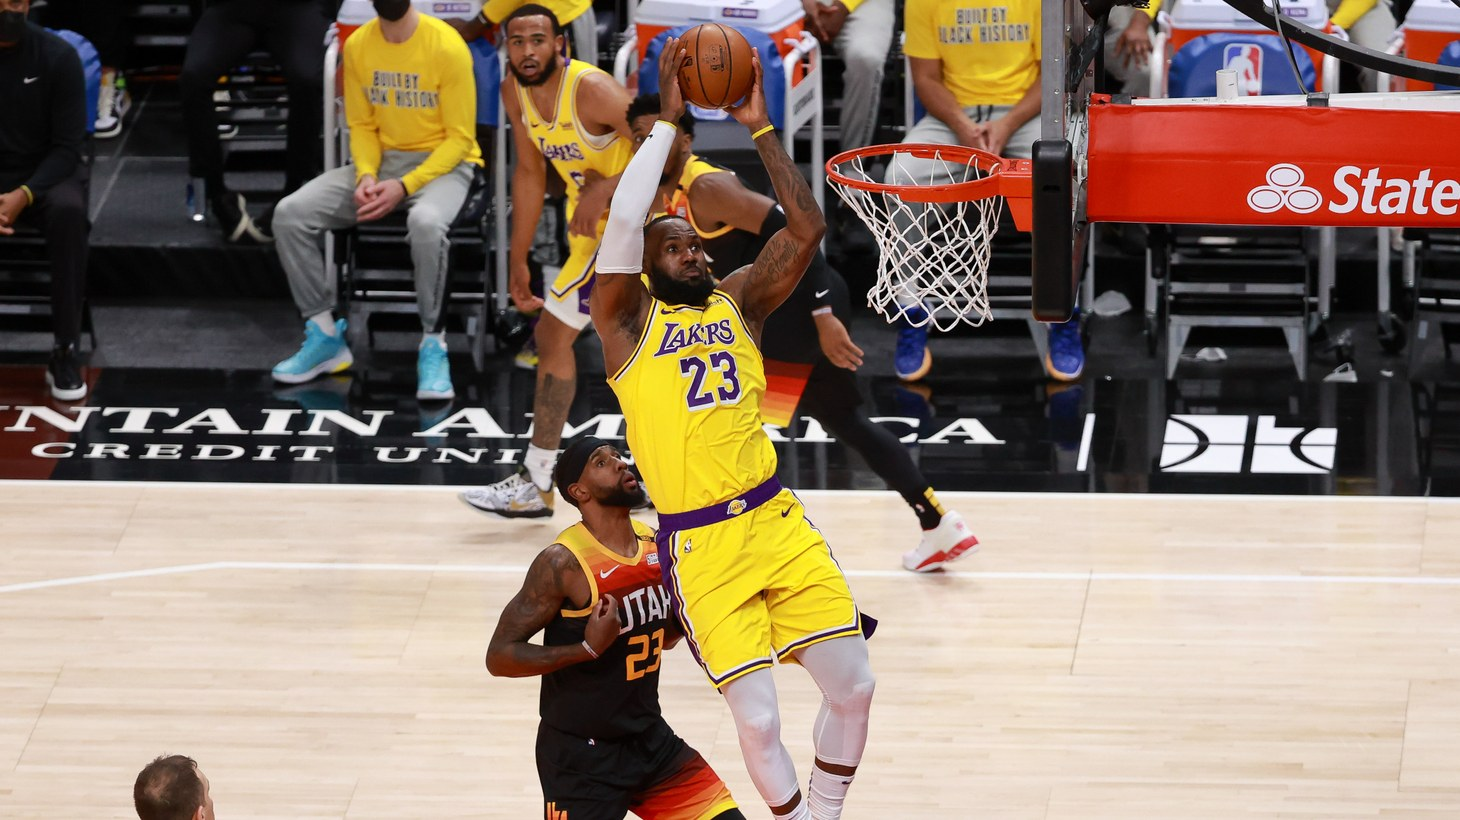 Los Angeles Lakers forward LeBron James (23) is fouled by Utah Jazz forward Royce O'Neale (23) while James tries to dunk the ball during the first quarter at Vivint Smart Home Arena, Feb 24, 2021; Salt Lake City, Utah, USA. A video of LeBron James recently sold for six figures.